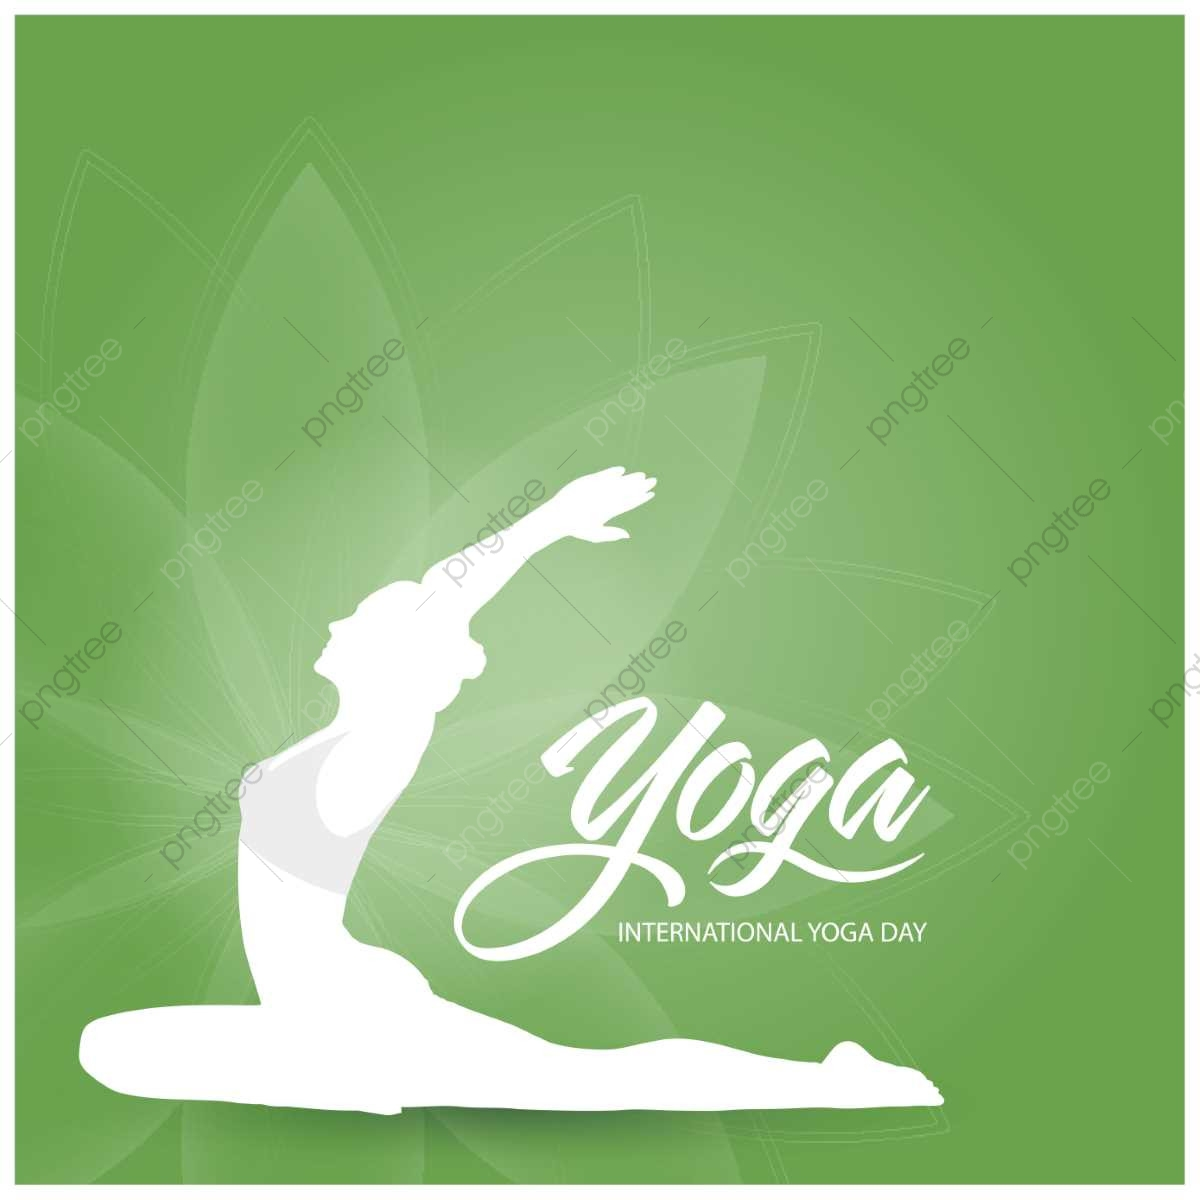 International Yoga Day Card Vector Yoga Day Yoga Icons Card Icons Day Icons Png And Vector With Transparent Background For Free Download